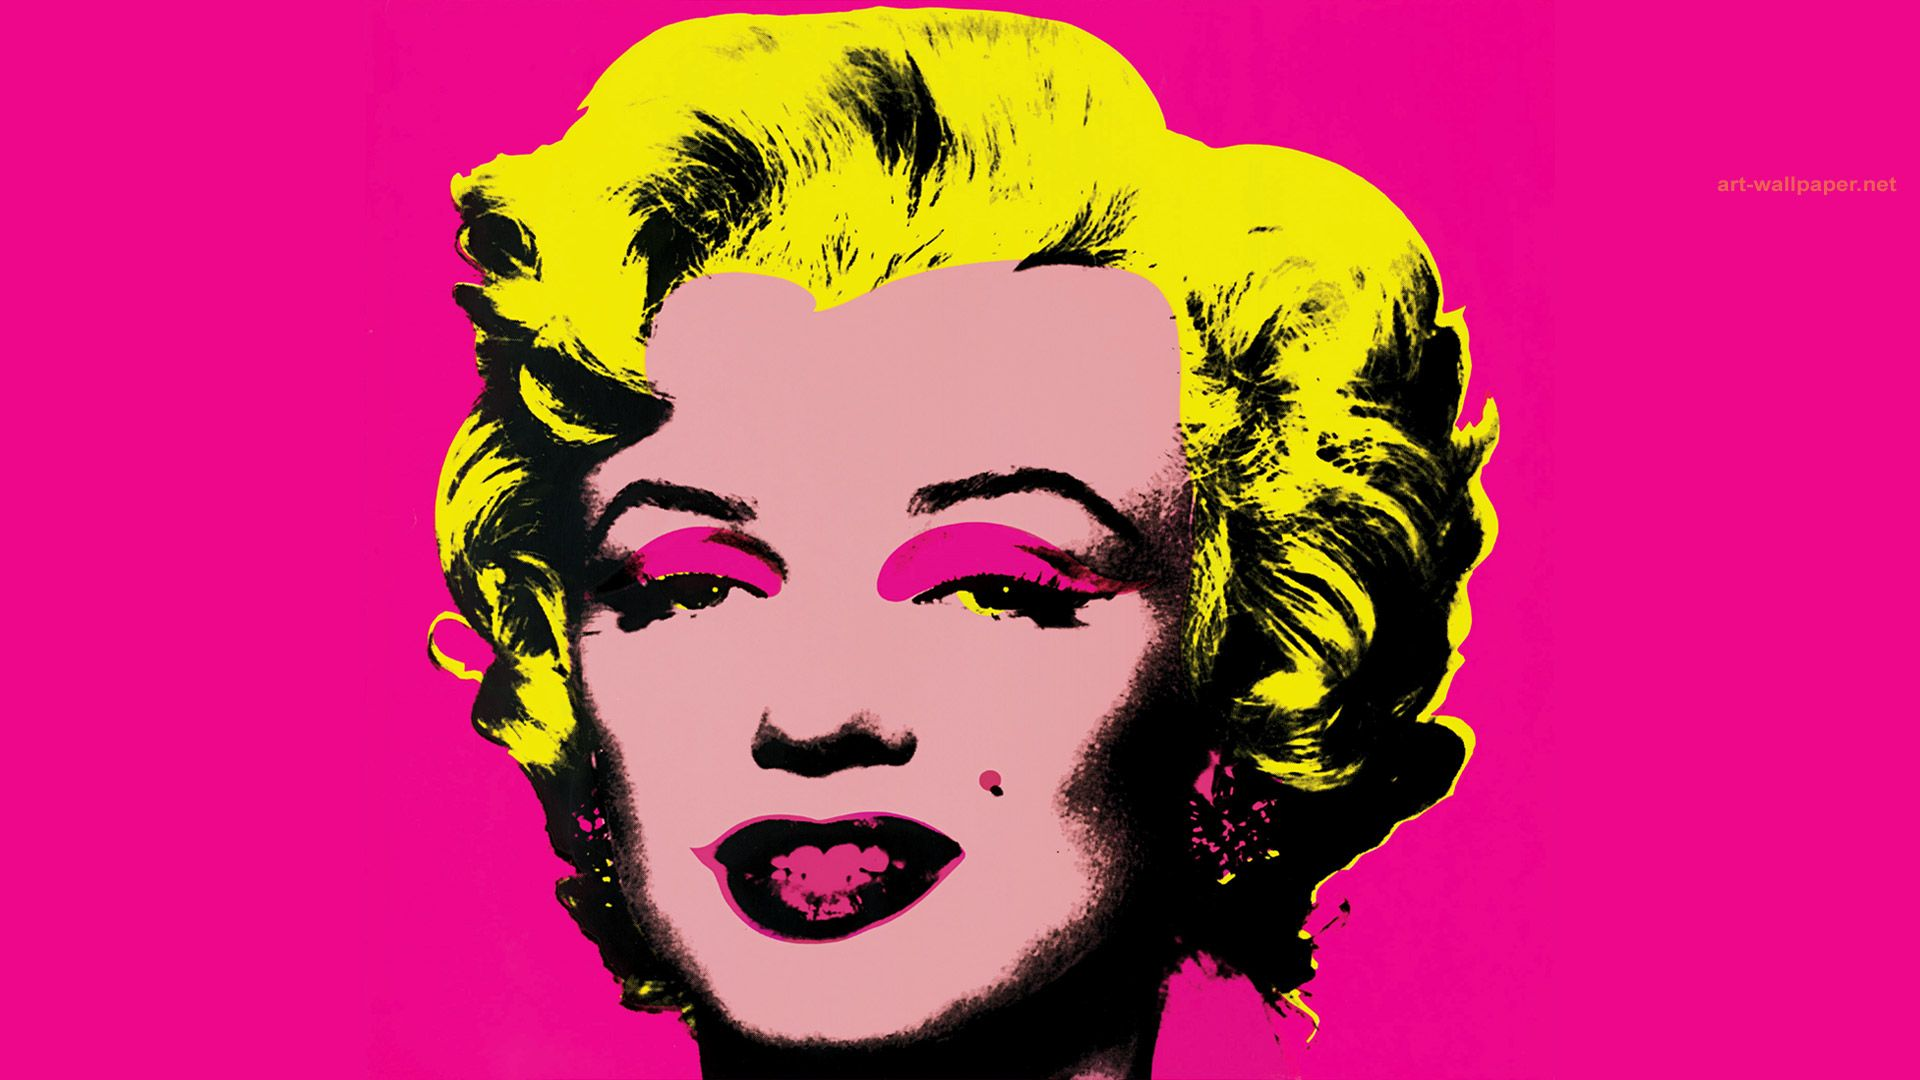 1920x1080 1080-andy-warhol-Andy-Warhol-Desktop-HD-Fine-Art-Pop-Art-Backgrounds ...